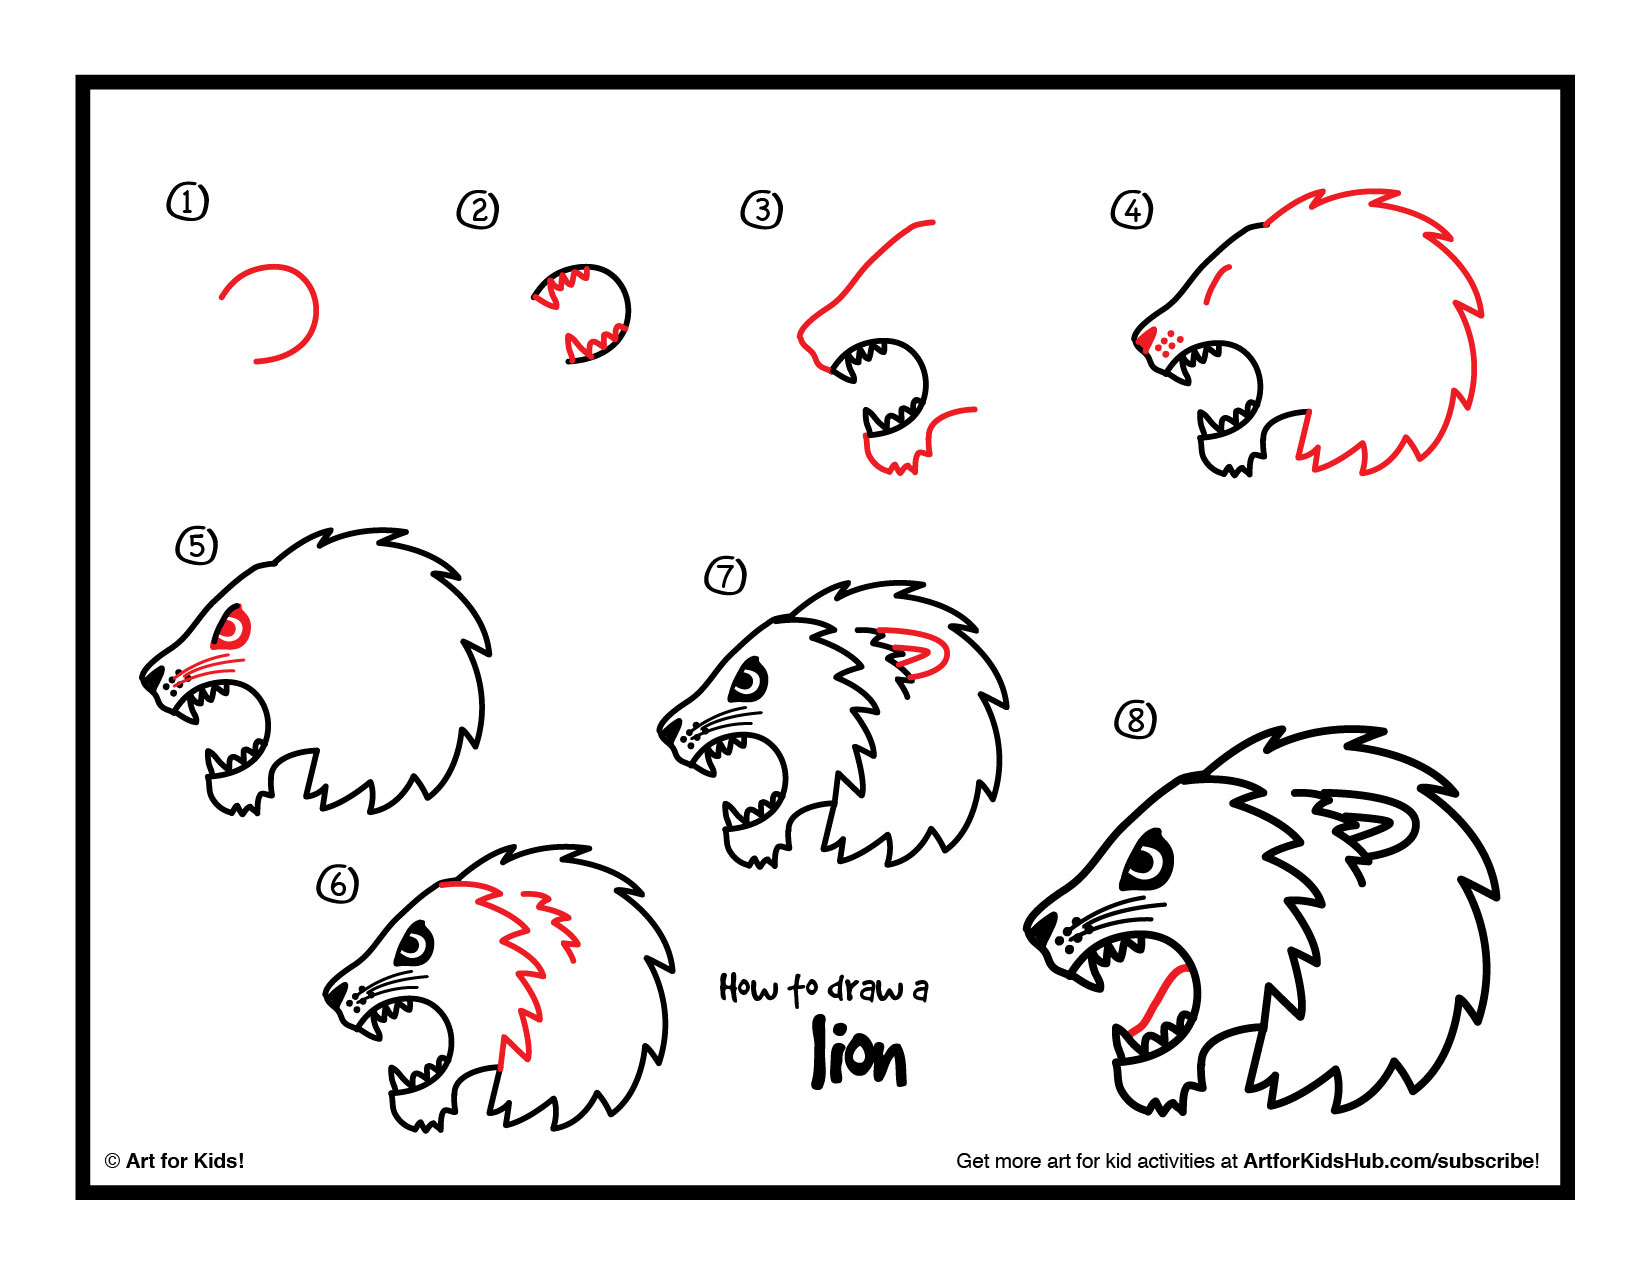 steps on how to draw a lion